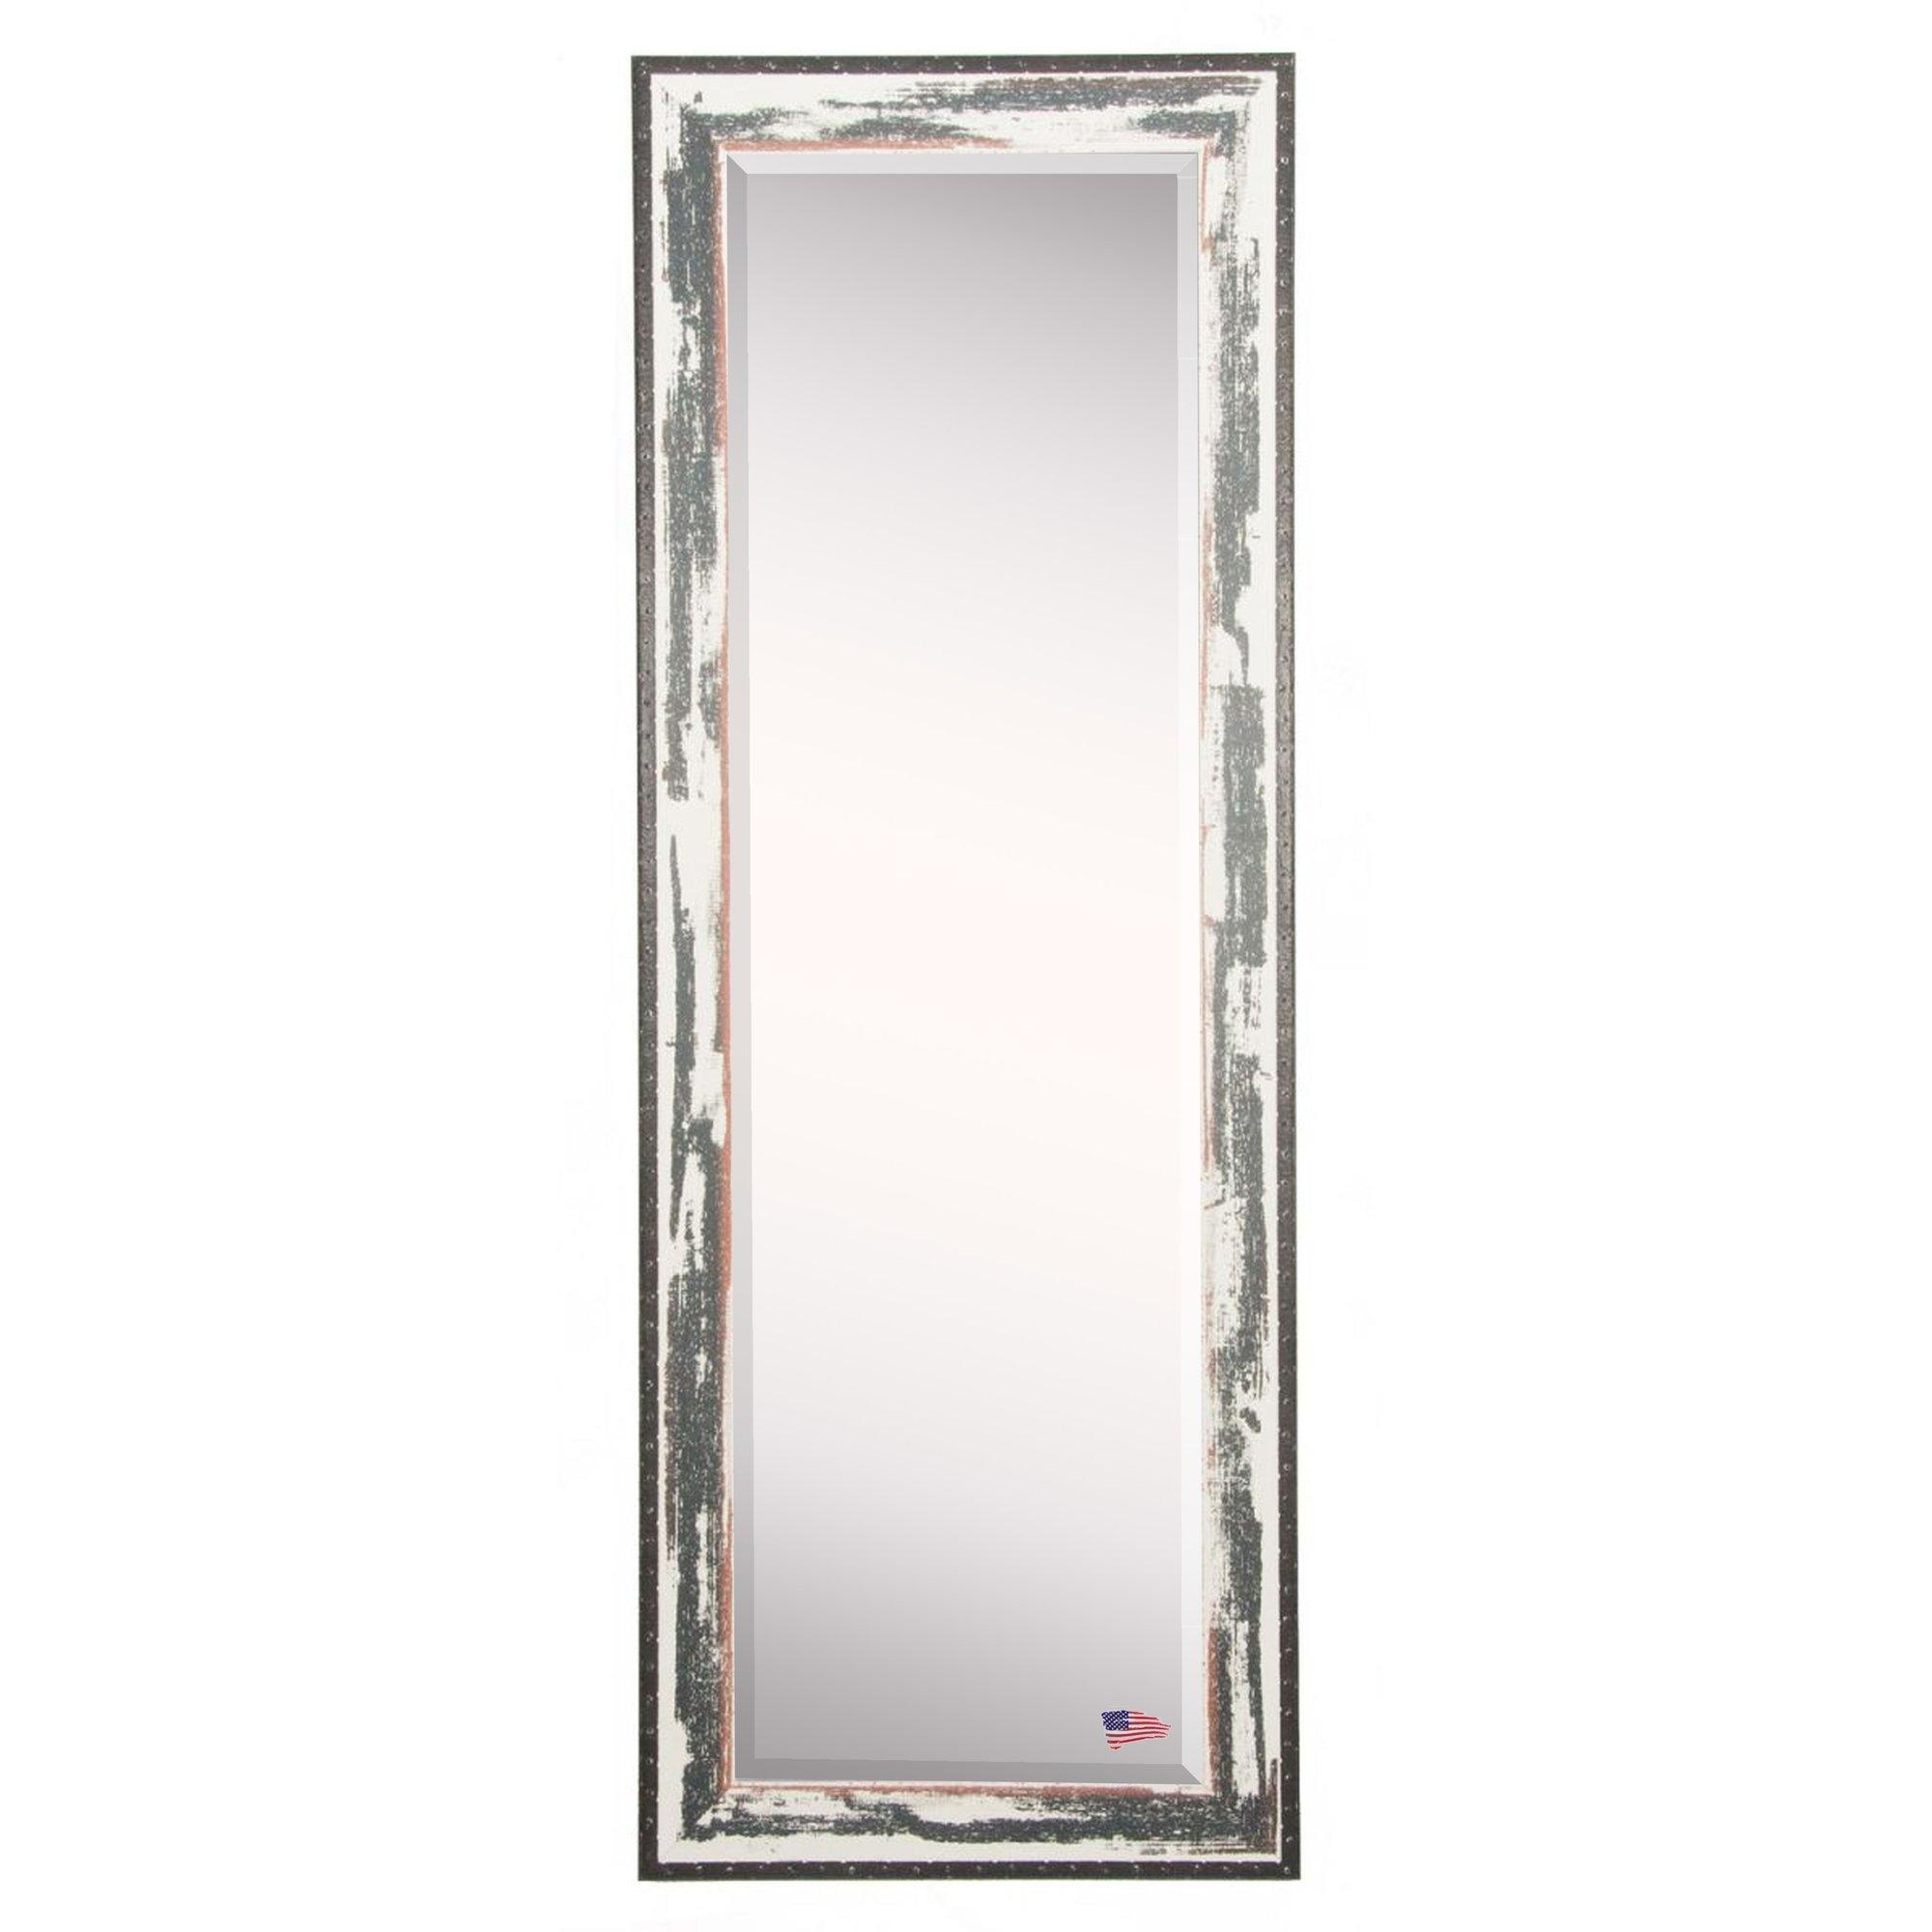 Beveled Full Length Mirror 12 Unique Decoration And Rectangle With Regard To Beveled Full Length Mirror (Image 7 of 20)